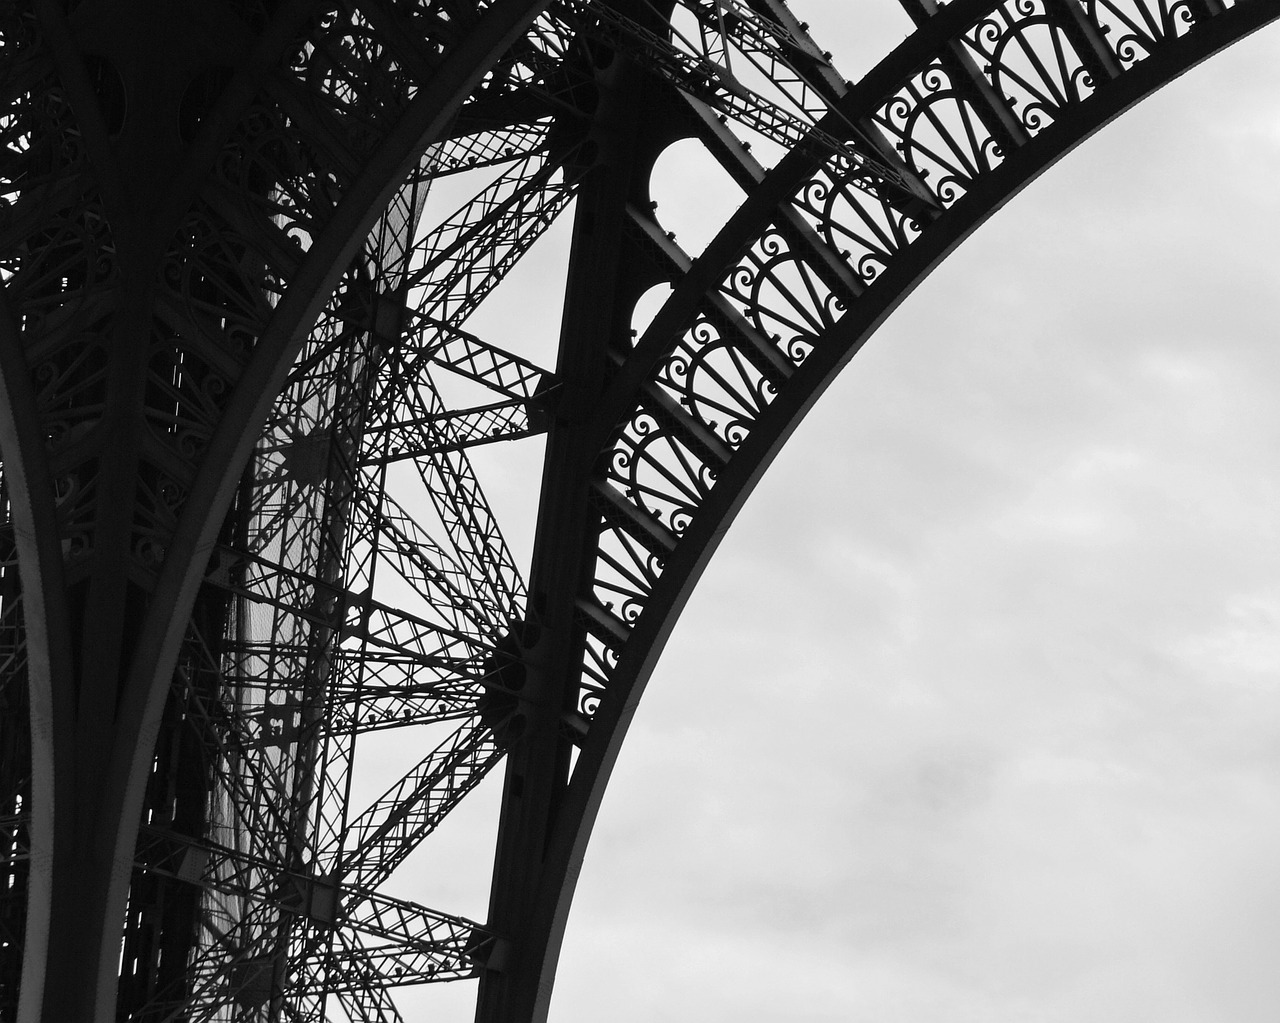 eiffel tower,paris,france,landmark,structure,monument,famous,attraction,europe,french,parisian,european,sightseeing,tourism,architectural,architecture,metallic,free pictures, free photos, free images, royalty free, free illustrations